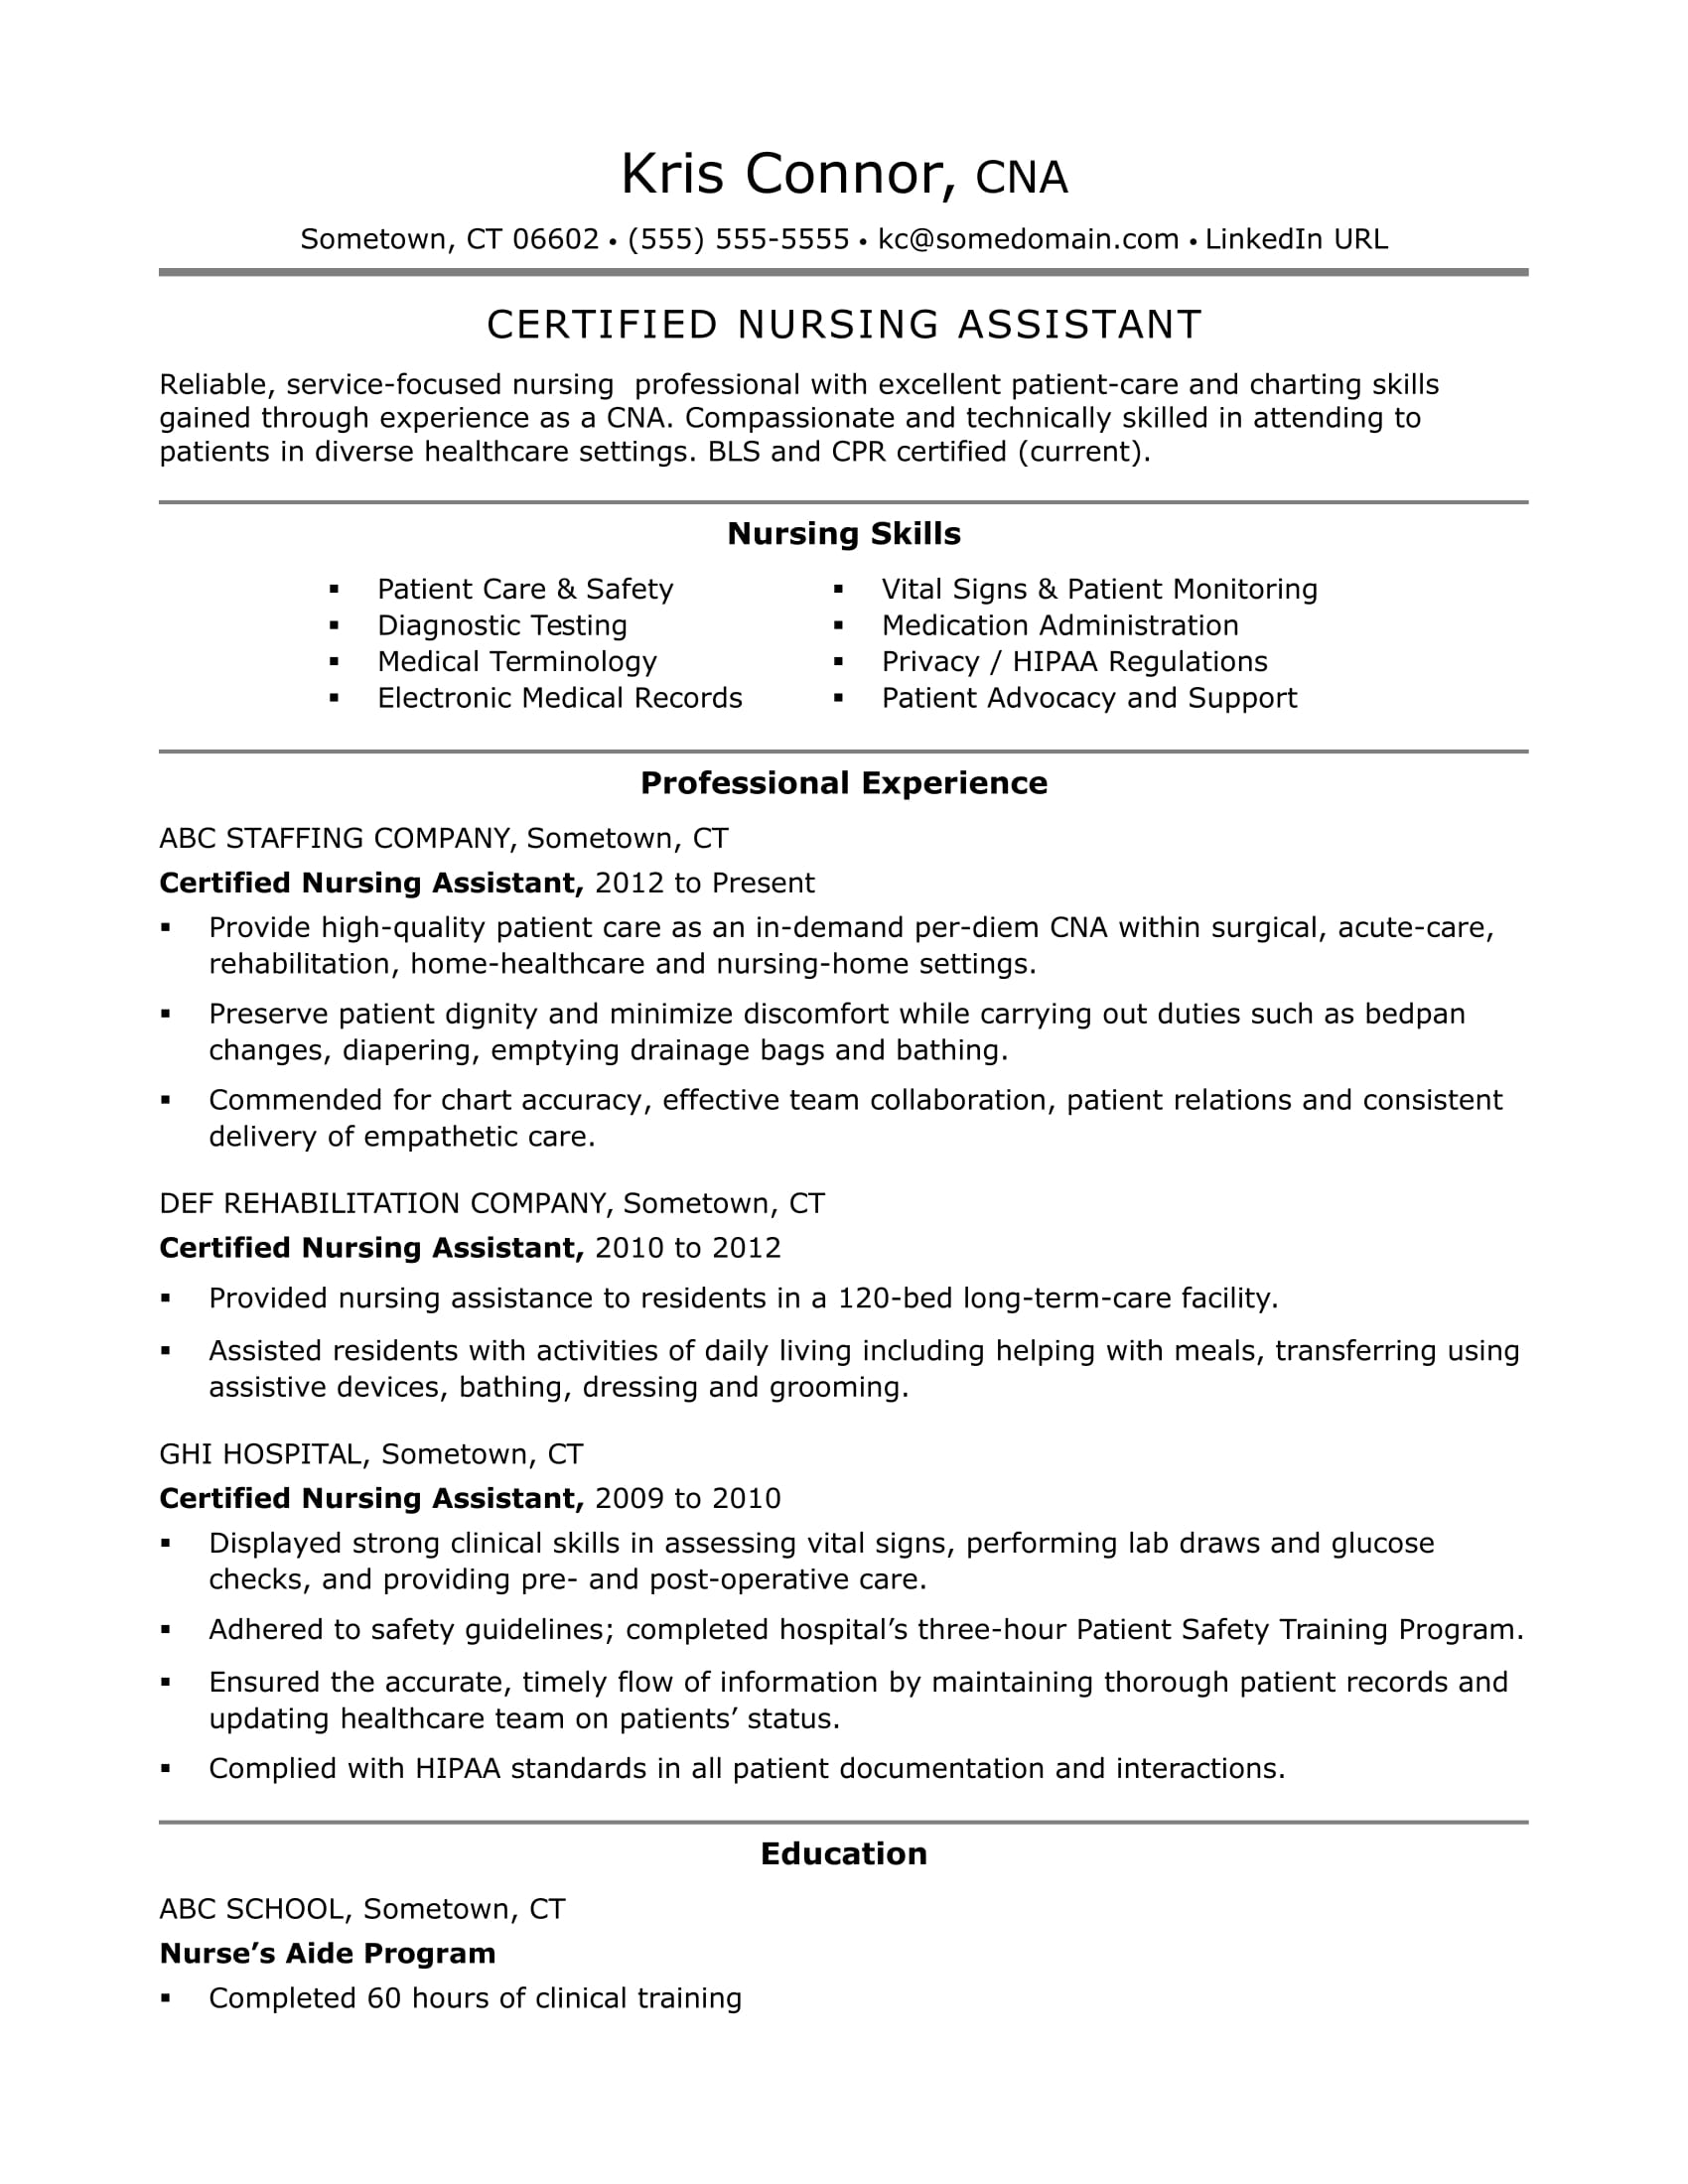 cna resume examples skills for cnas monster certified nursing assistant example thesis Resume Certified Nursing Assistant Resume Example